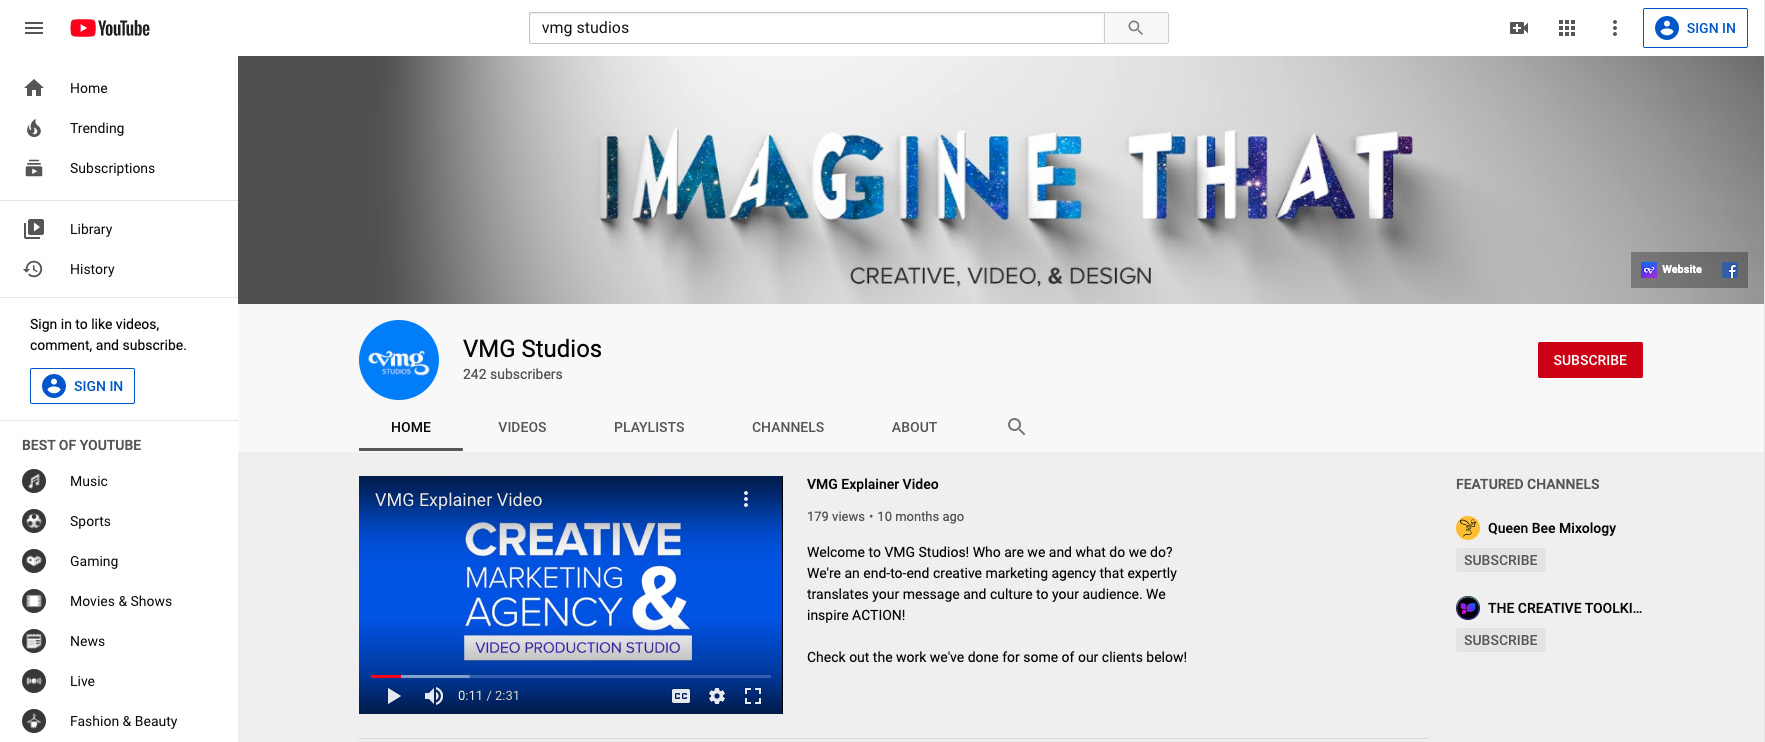 VMG Studios' YouTube channel featuring its explainer video as the channel trailer